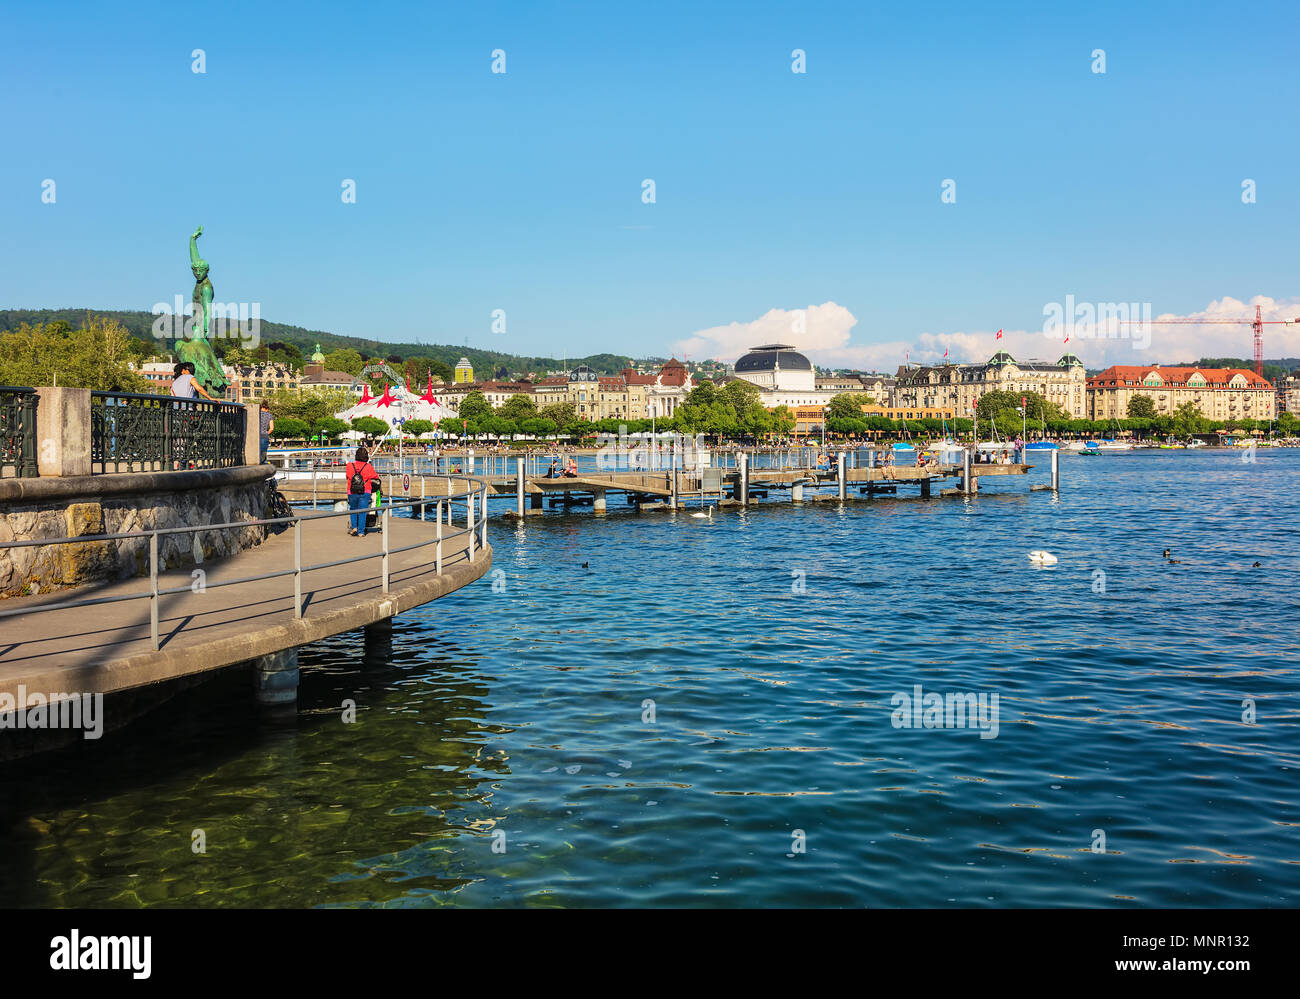 Zurich, Switzerland - May 11, 2018: Lake Zurich, view from the city of Zurich. Lake Zurich is a lake in Switzerland, extending southeast of the city o - Stock Image